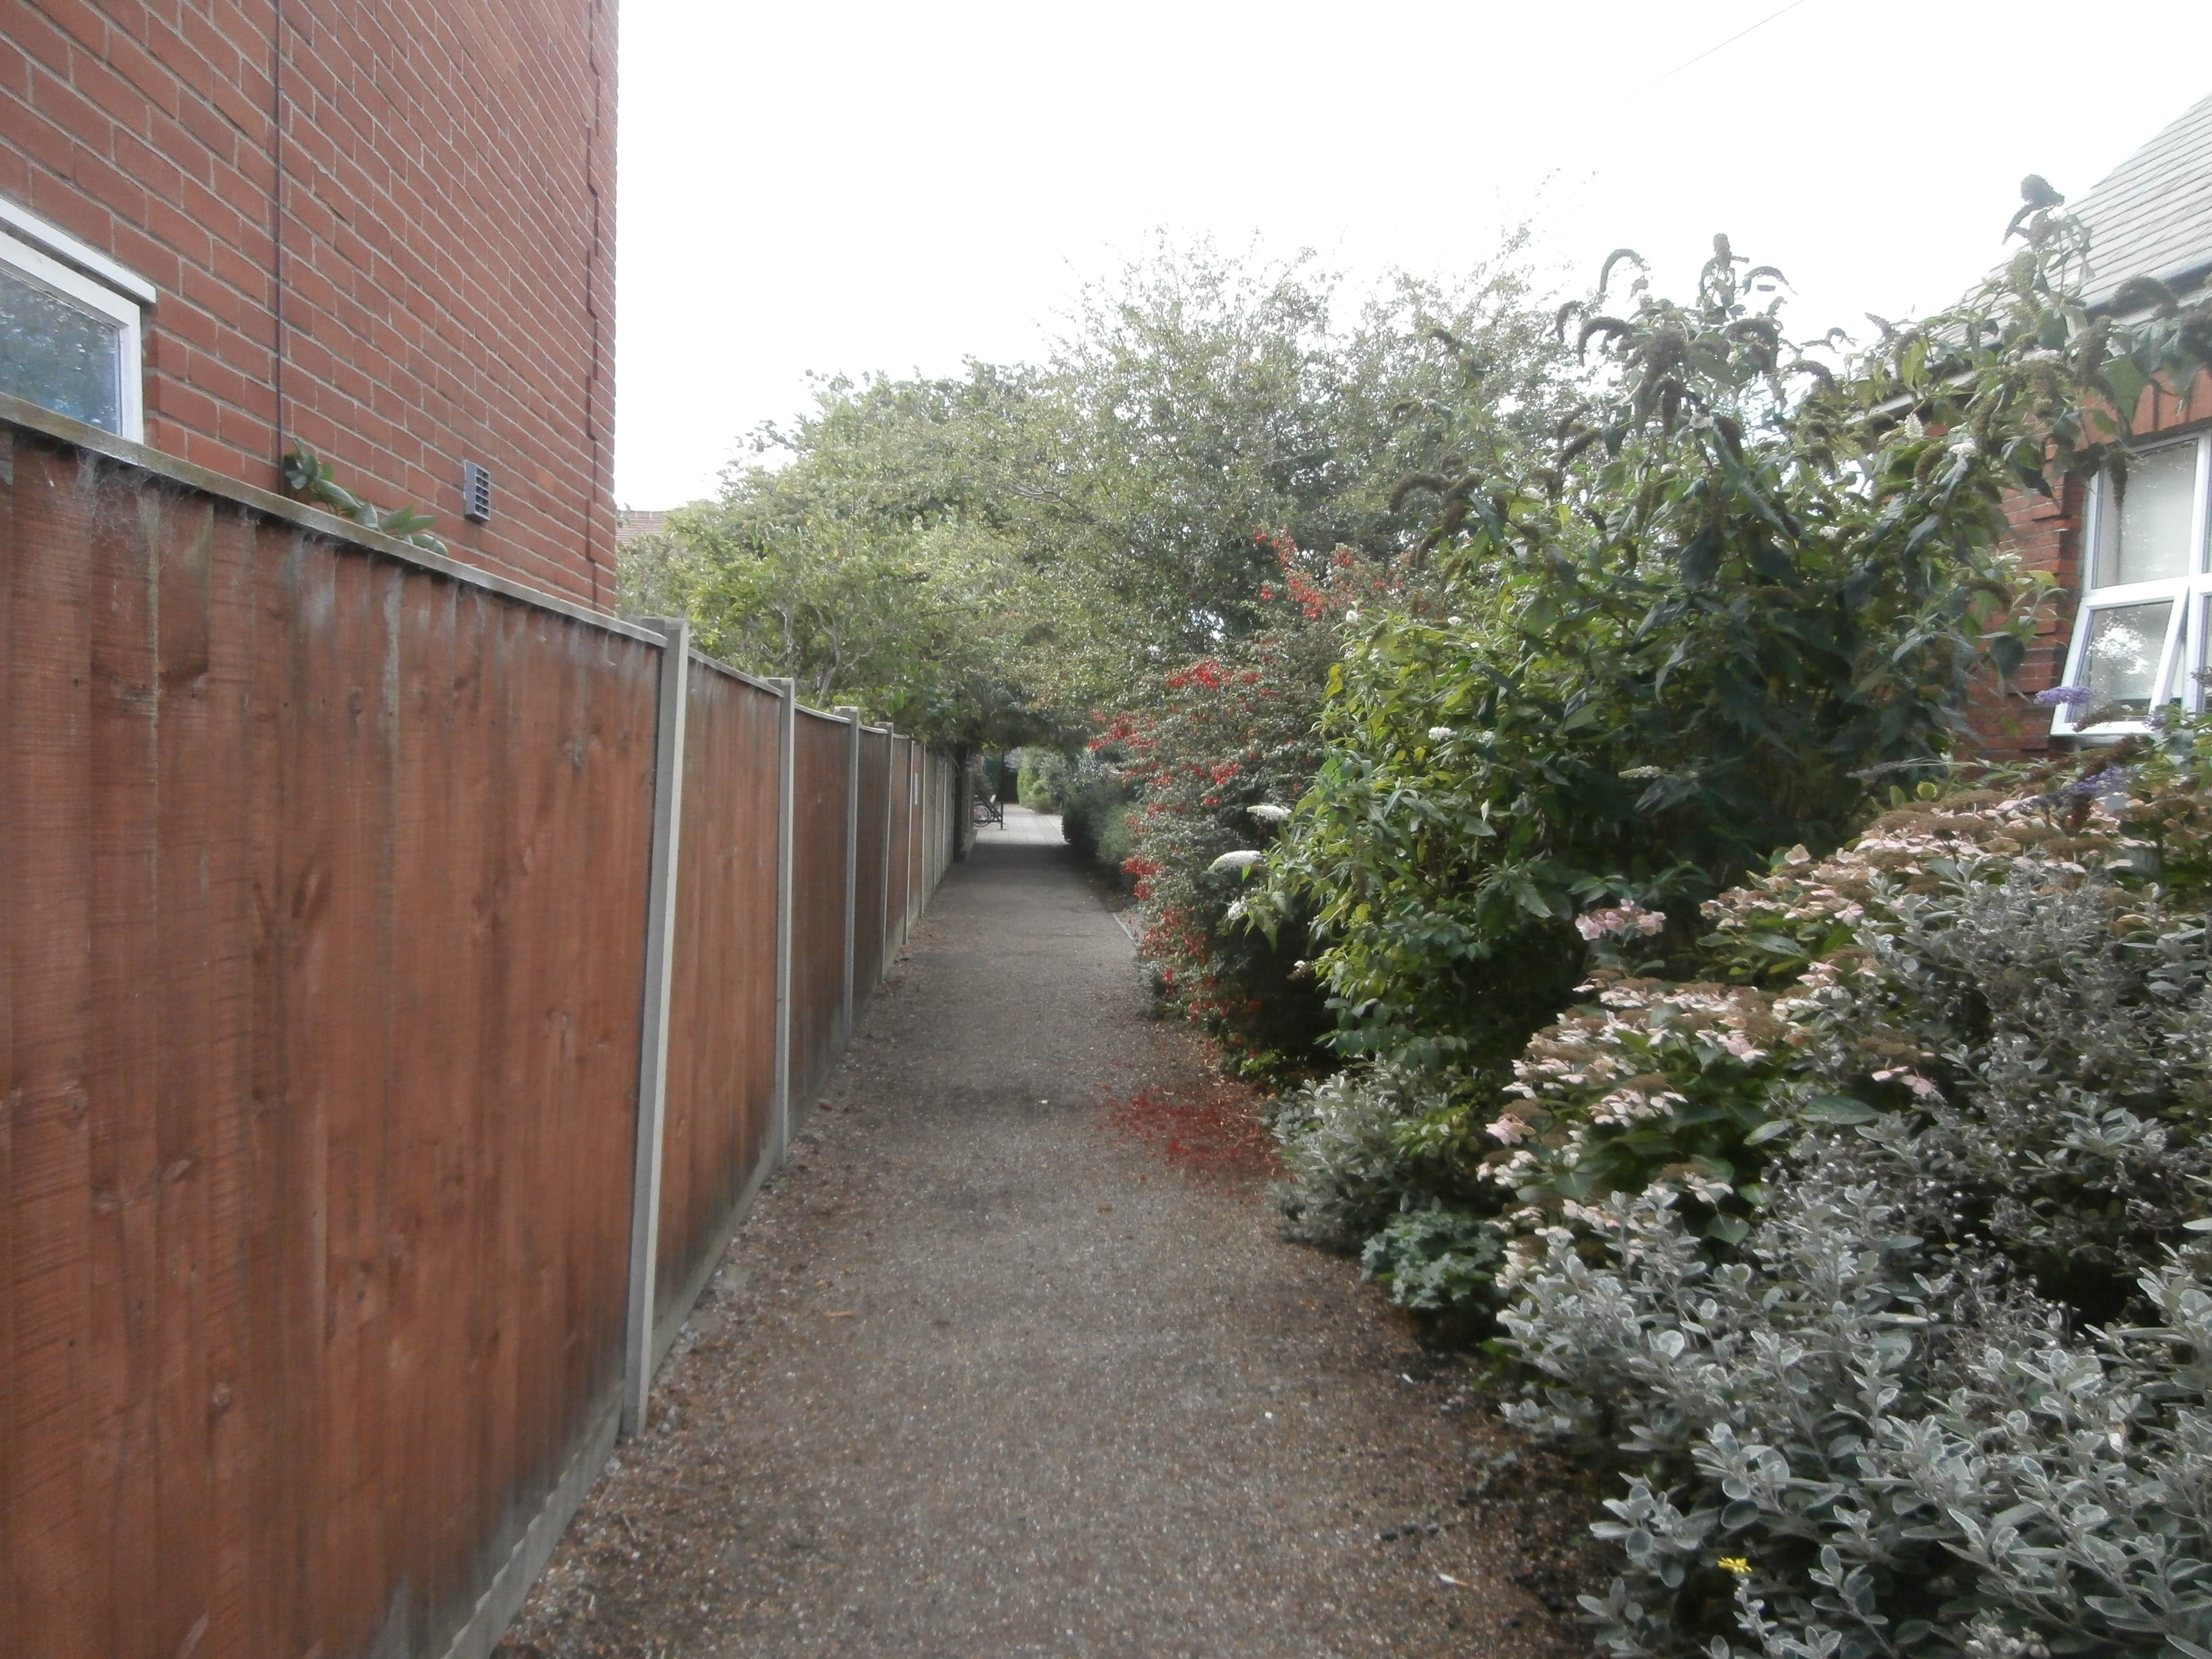 Footpath to Corton Primary School